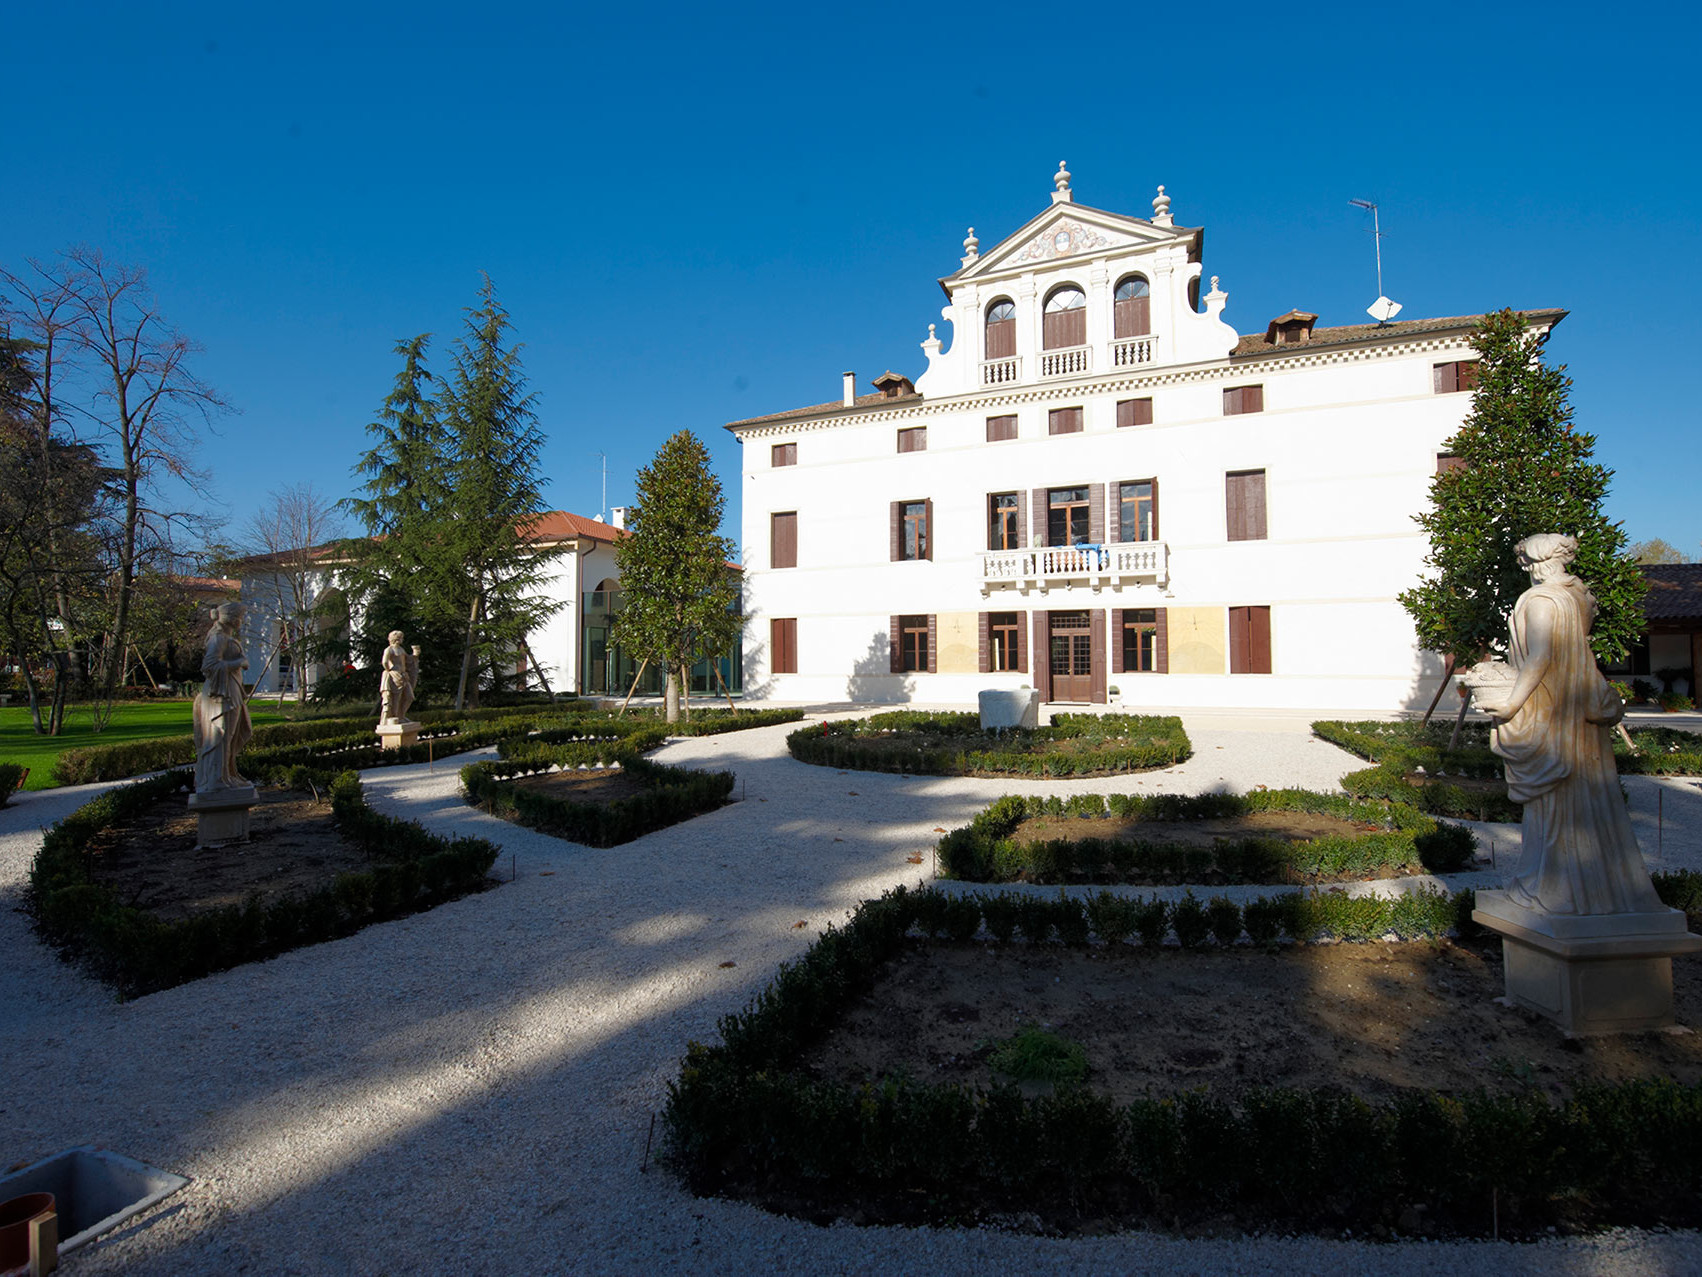 View of the ancient villa